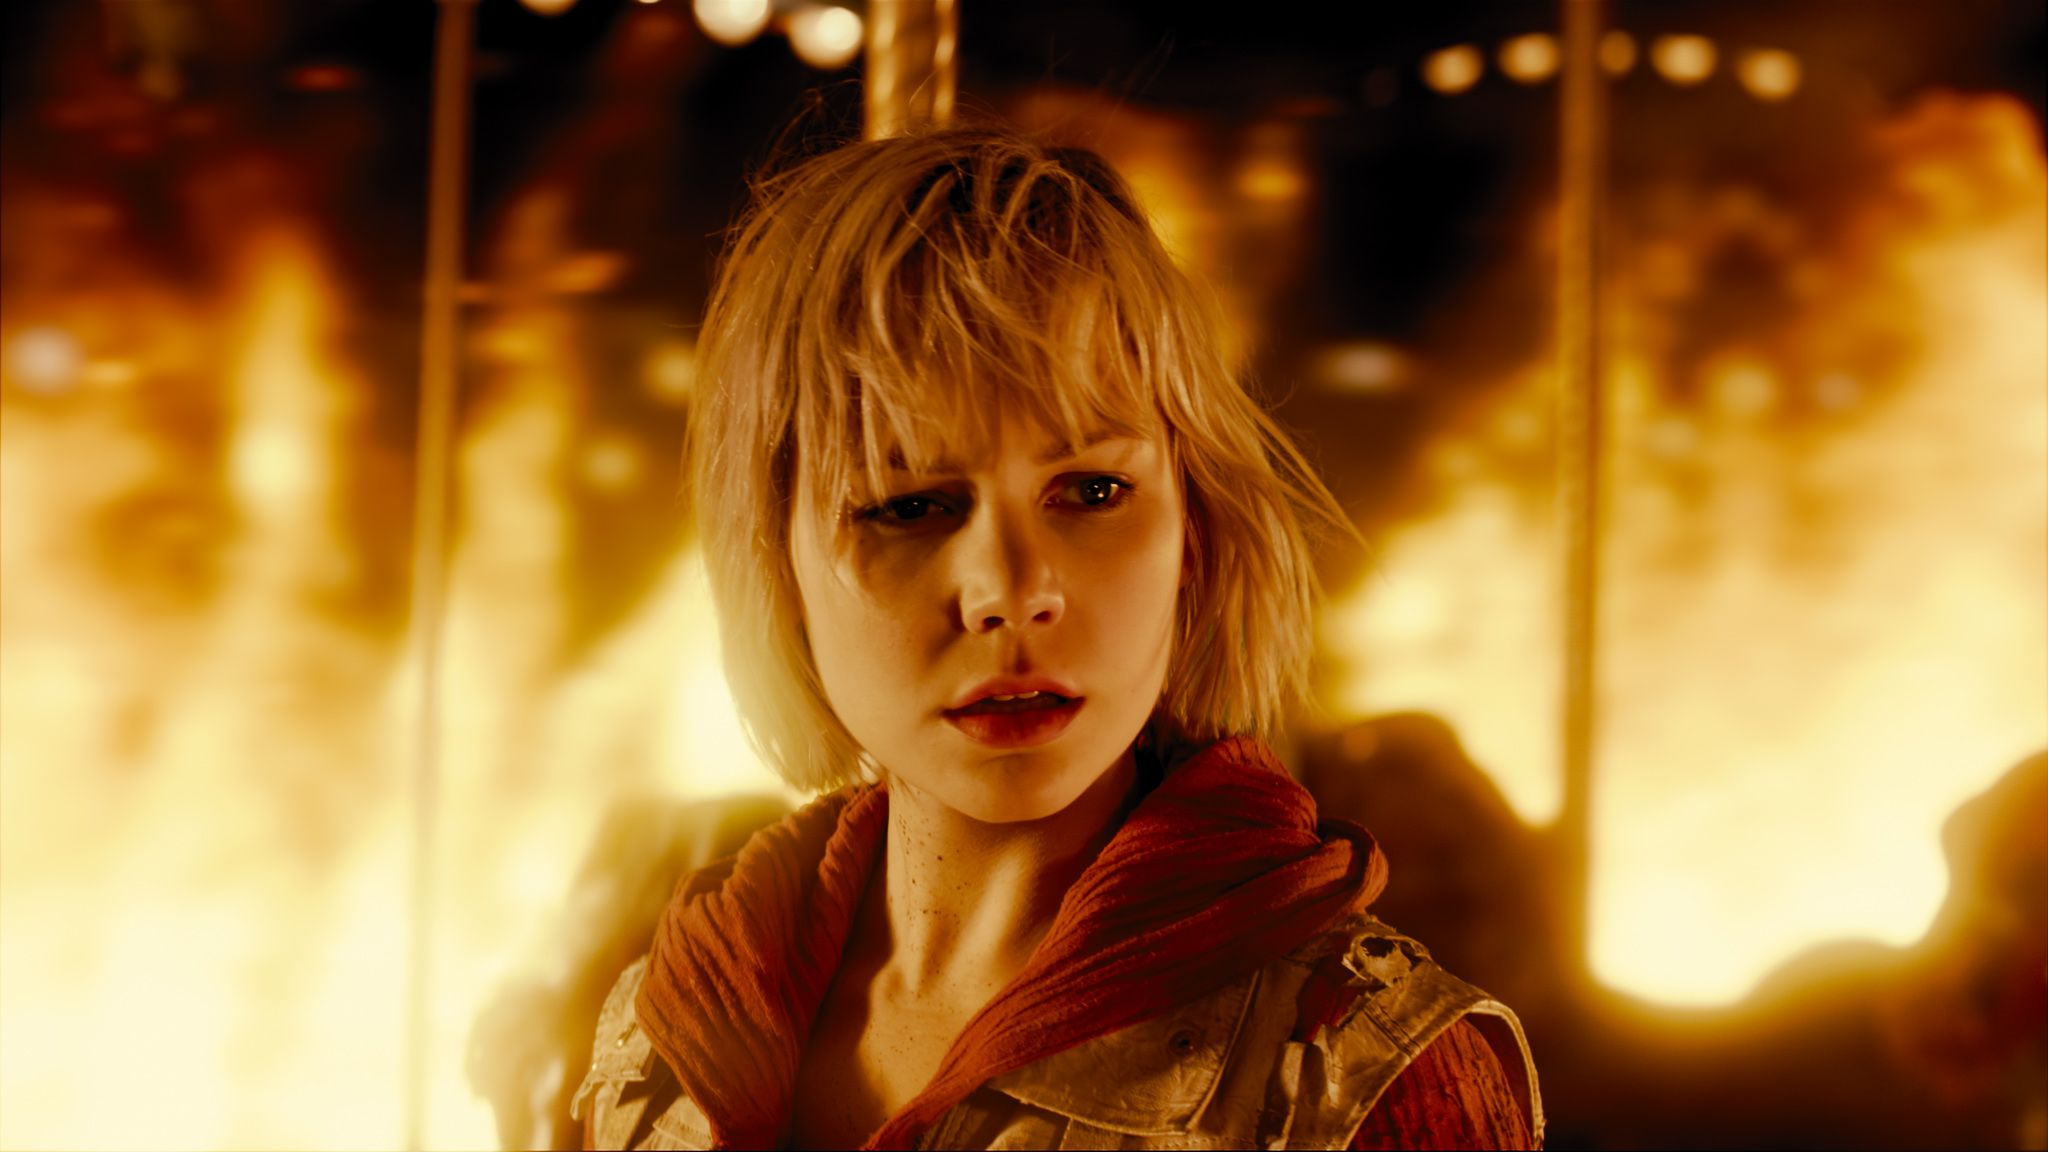 adelaide clemens youtube